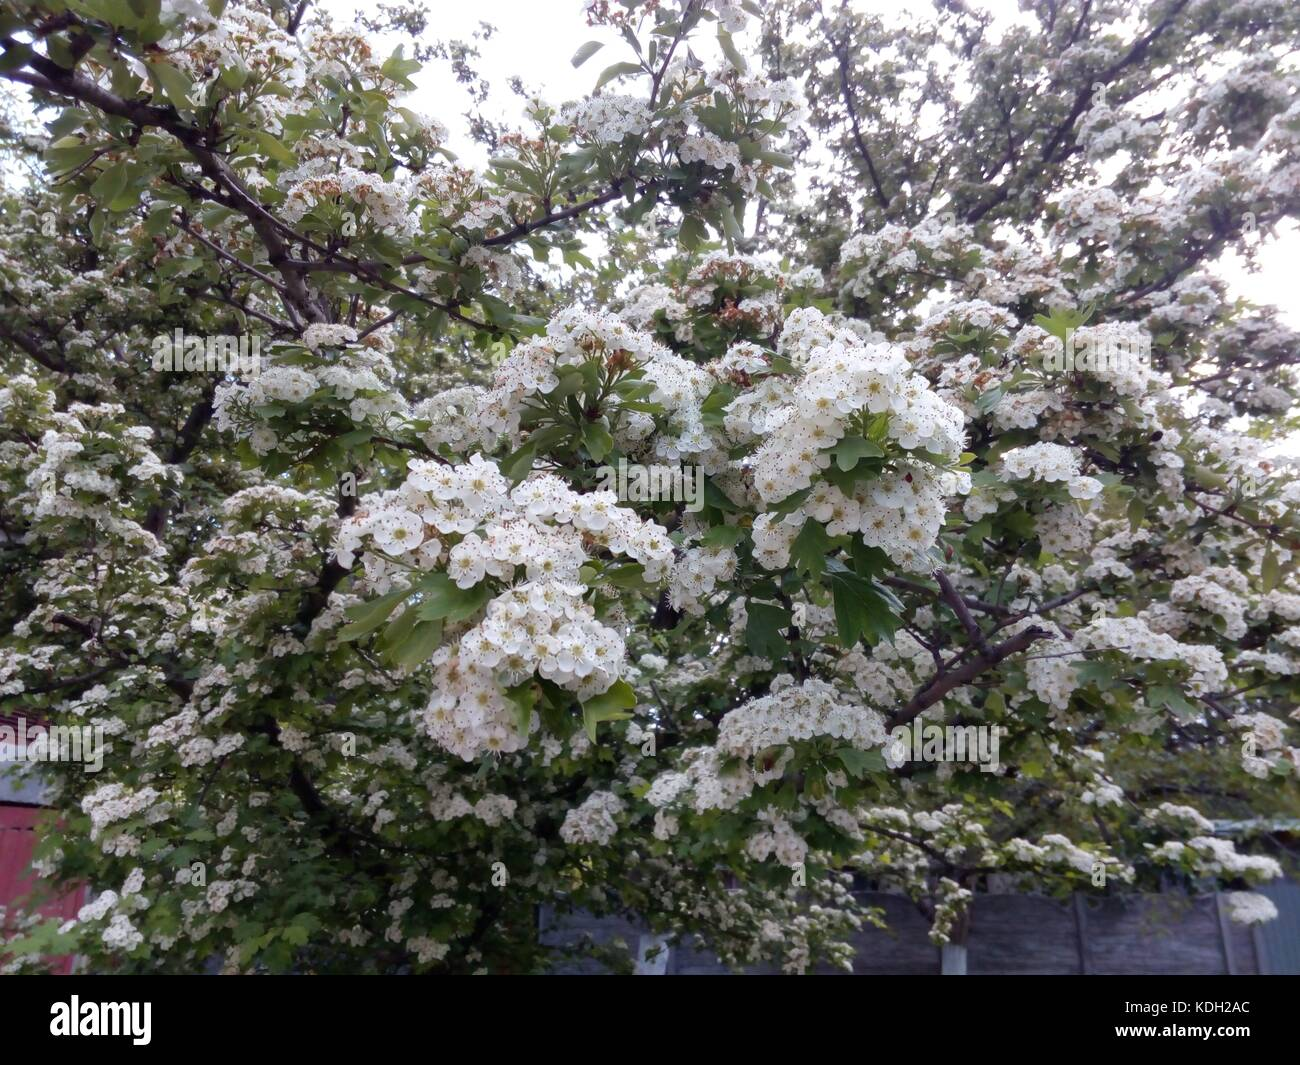 Branches of a blossoming fruit tree with small white flowers in branches of a blossoming fruit tree with small white flowers in spring day mightylinksfo Image collections